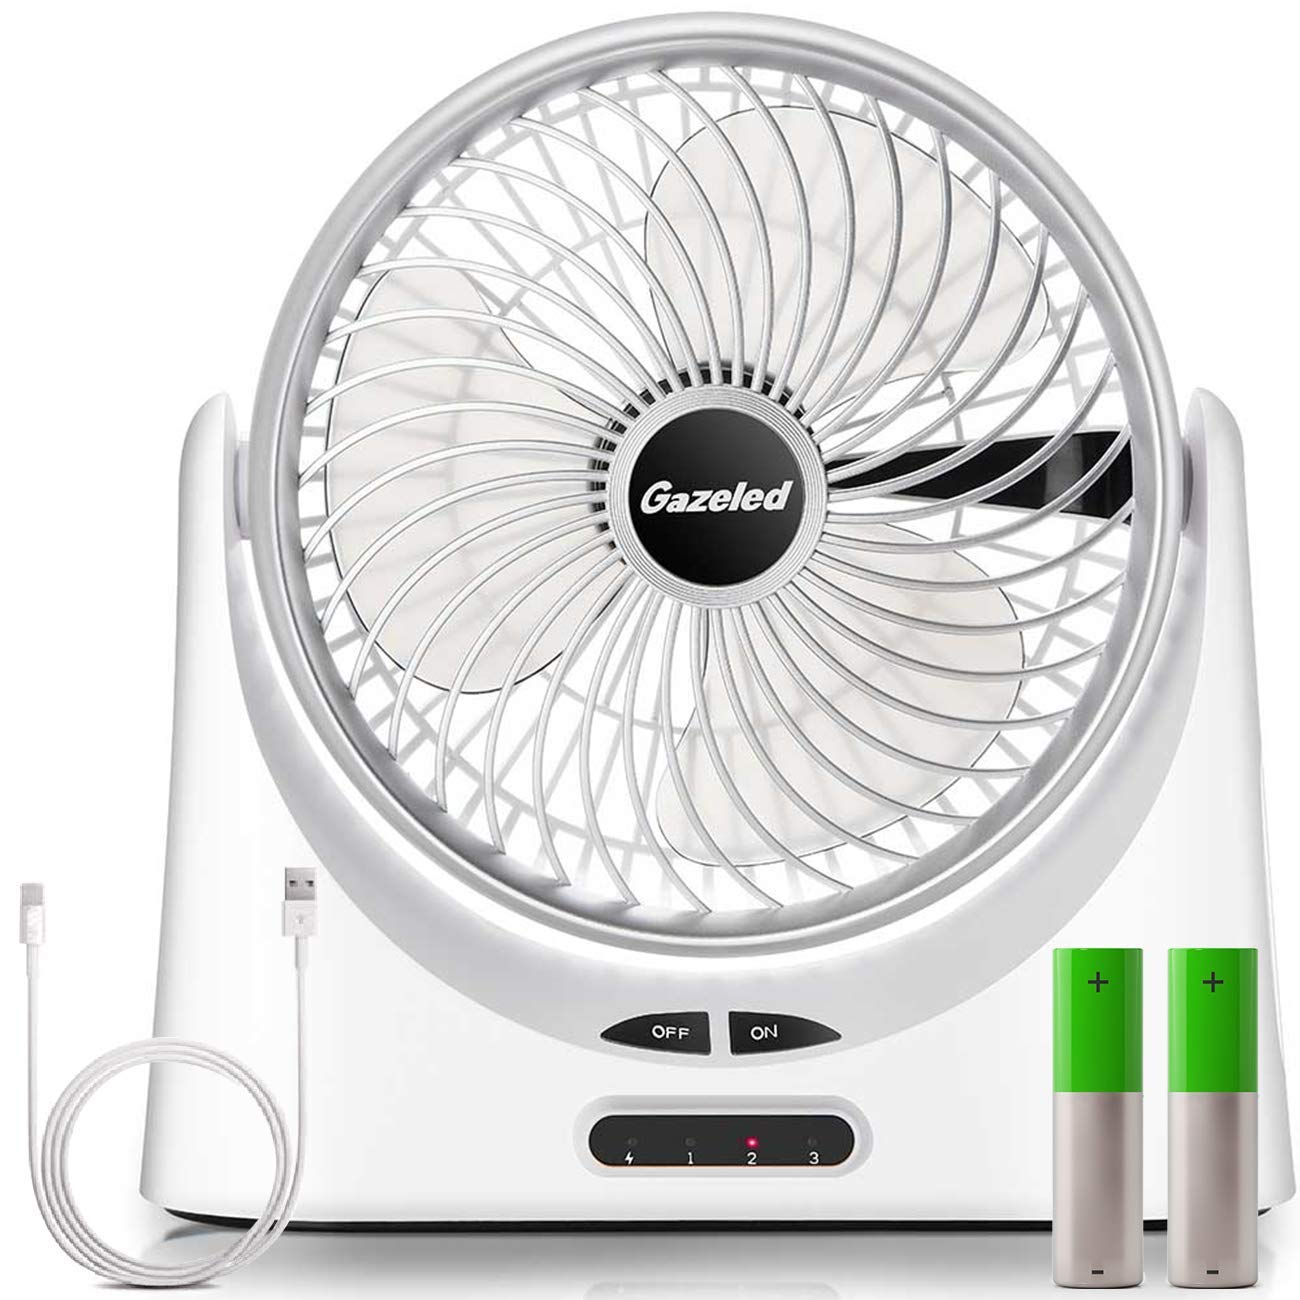 Rechargeable Battery Operated Fan, Portable USB Desk Fan, 7 inch 18650 Battery Fan, Quiet USB Powered Personal Fans with 5000mAh Battery(5-17H), LED light, 3 Speeds, for Camping, Traveling,Home,Office by Gazeled